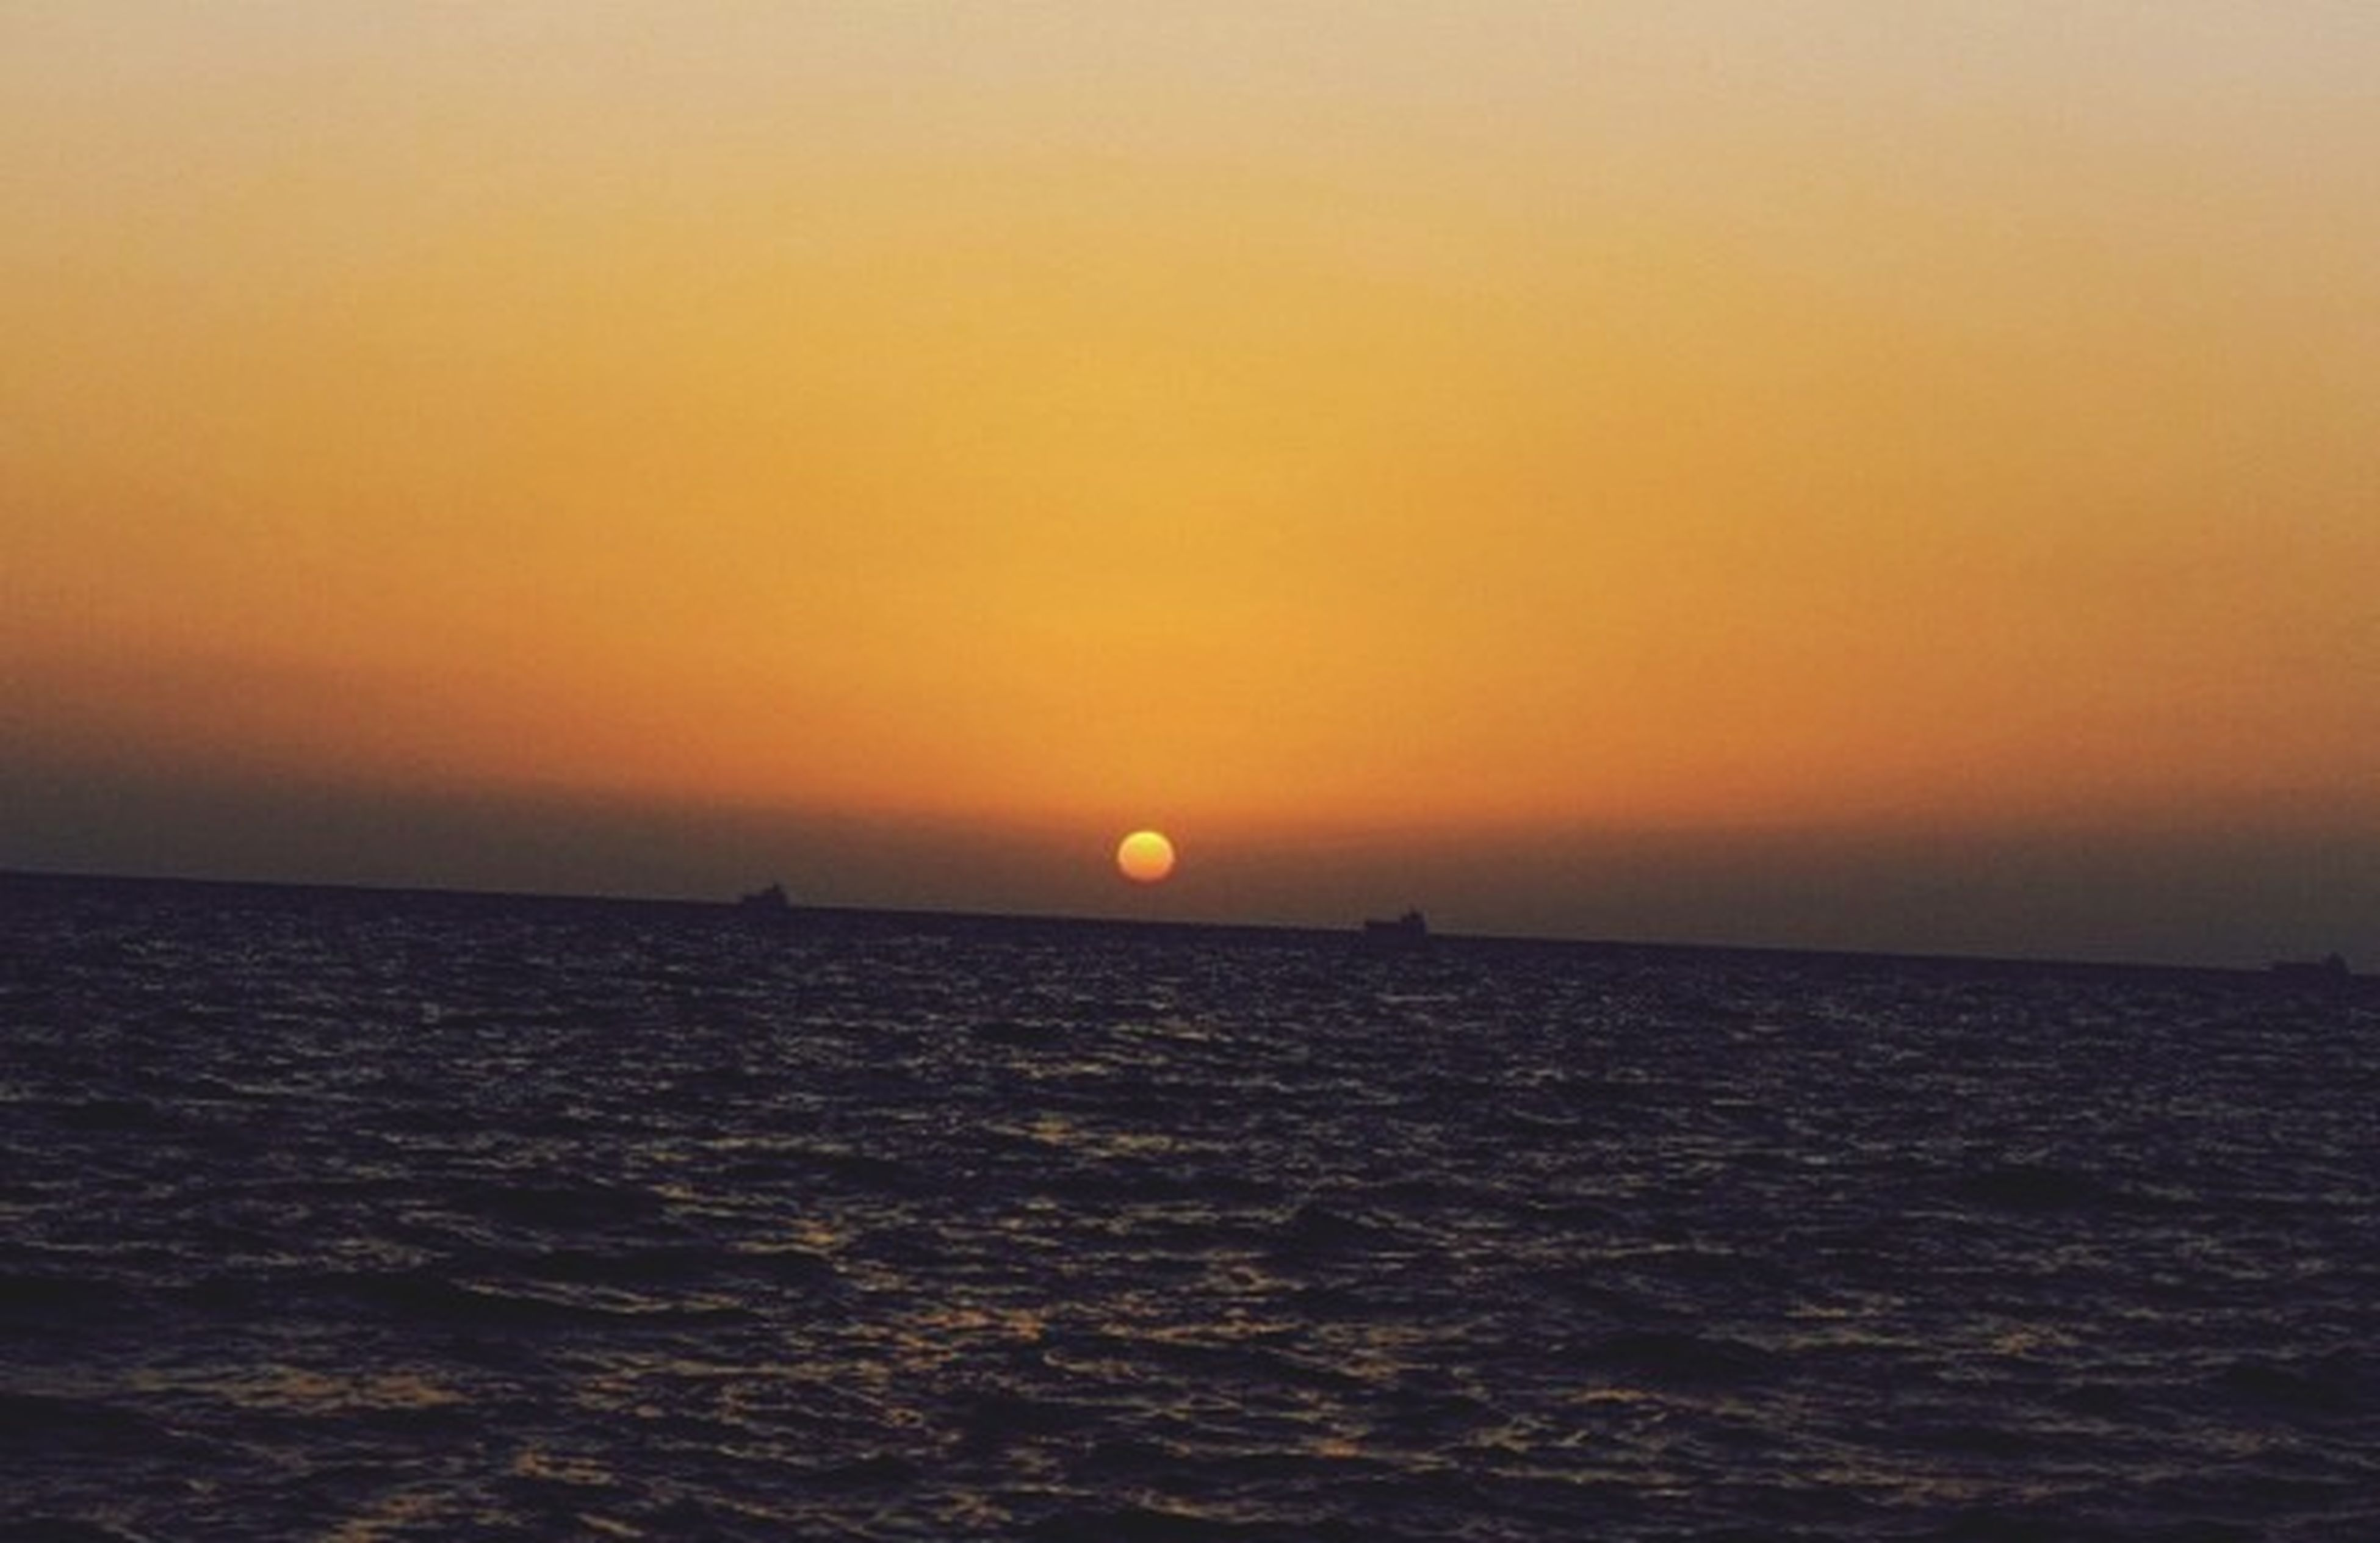 sea, sunset, water, horizon over water, waterfront, scenics, tranquil scene, sun, orange color, beauty in nature, tranquility, rippled, idyllic, nature, copy space, clear sky, seascape, sky, outdoors, no people